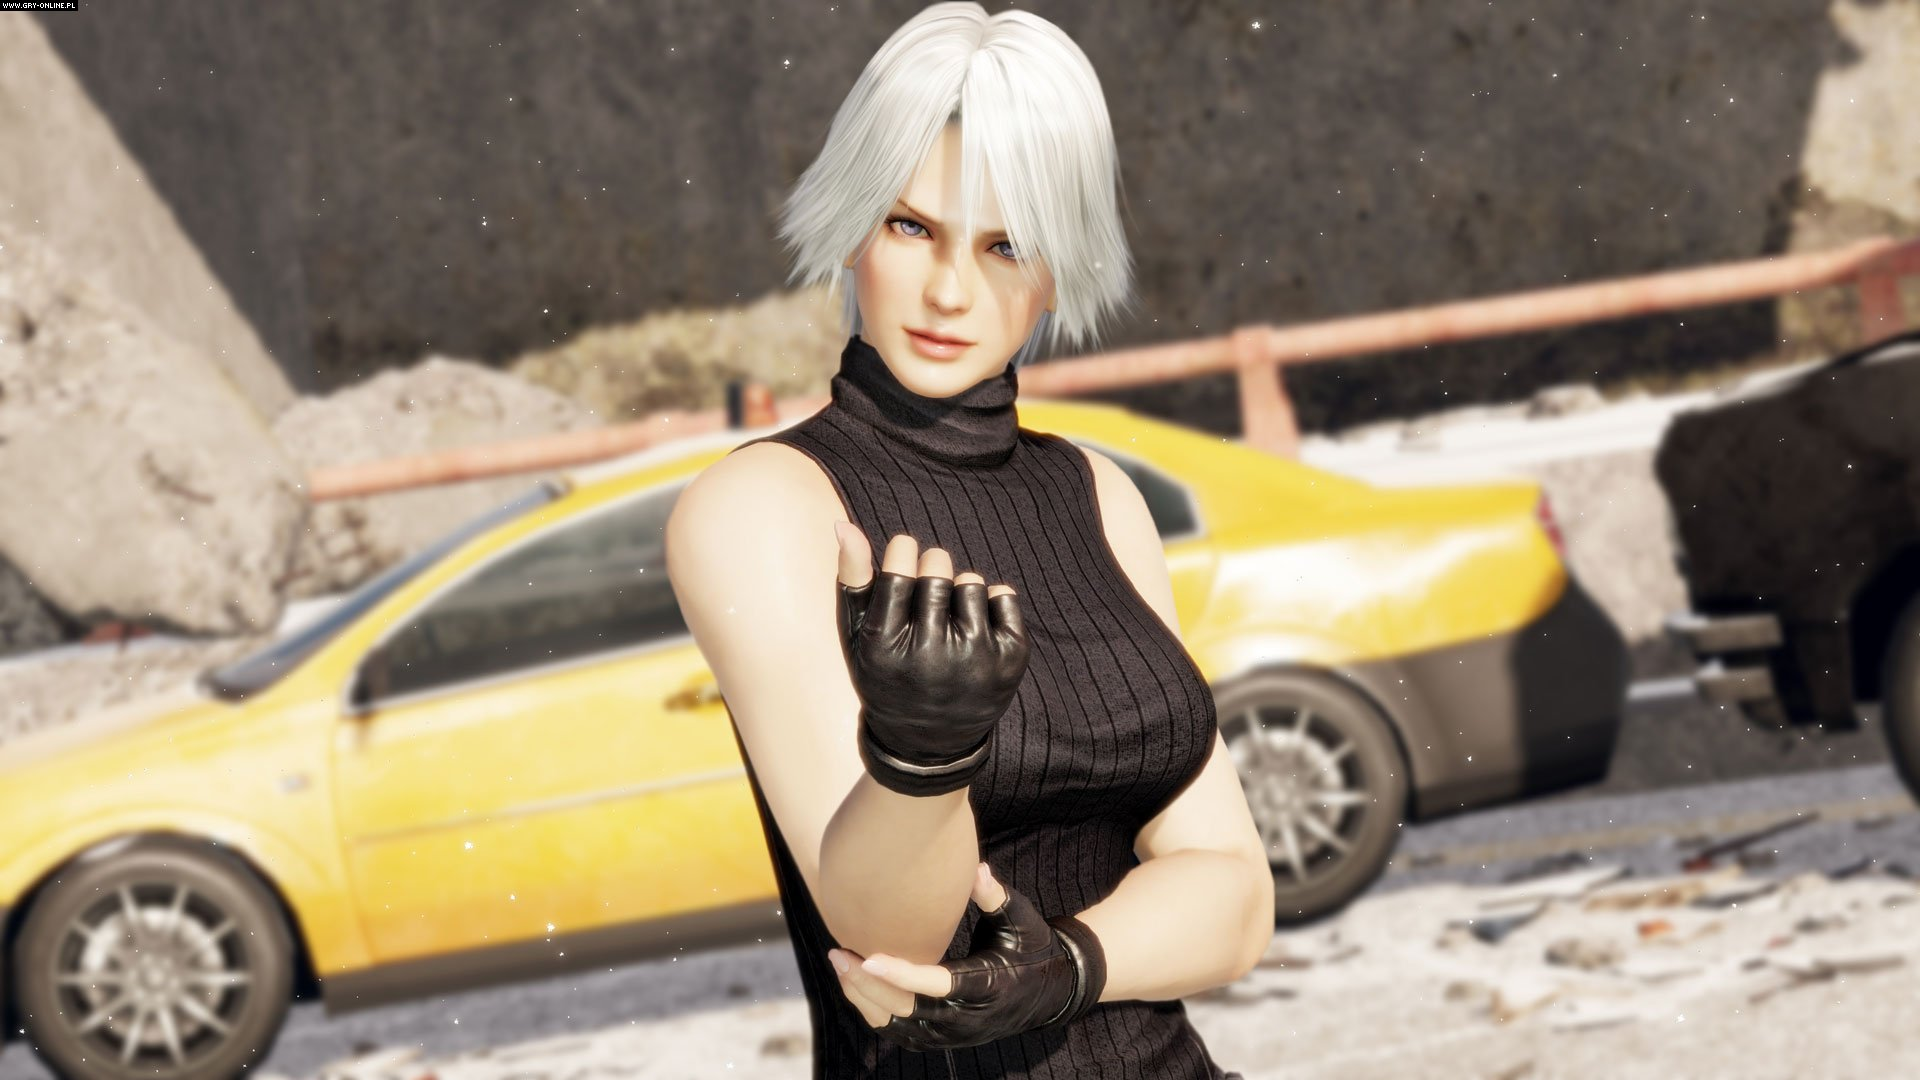 Dead or Alive 6 PC, PS4, XONE Games Image 22/81, Team Ninja, Koei Tecmo